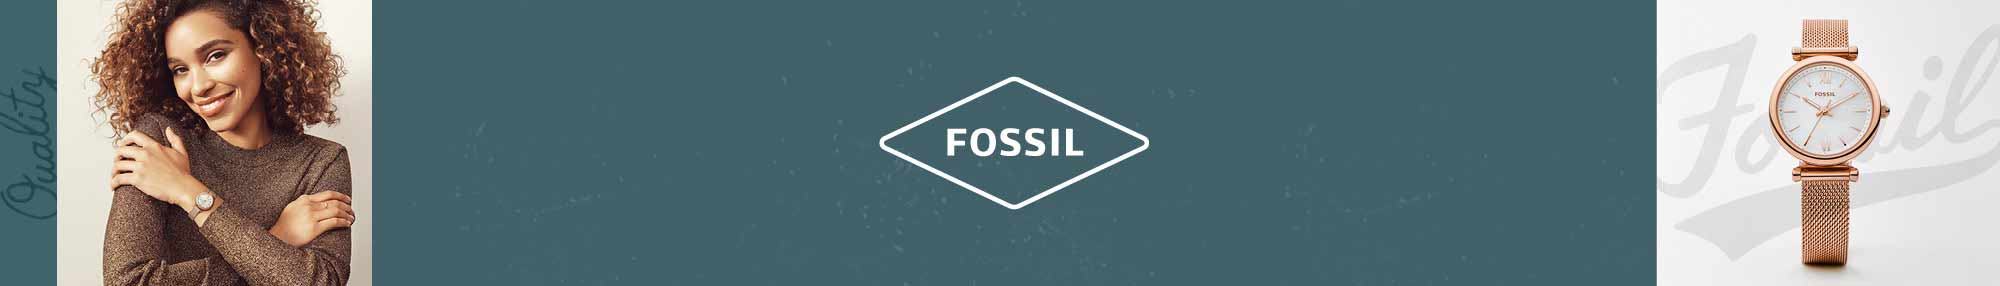 Fossil Banner